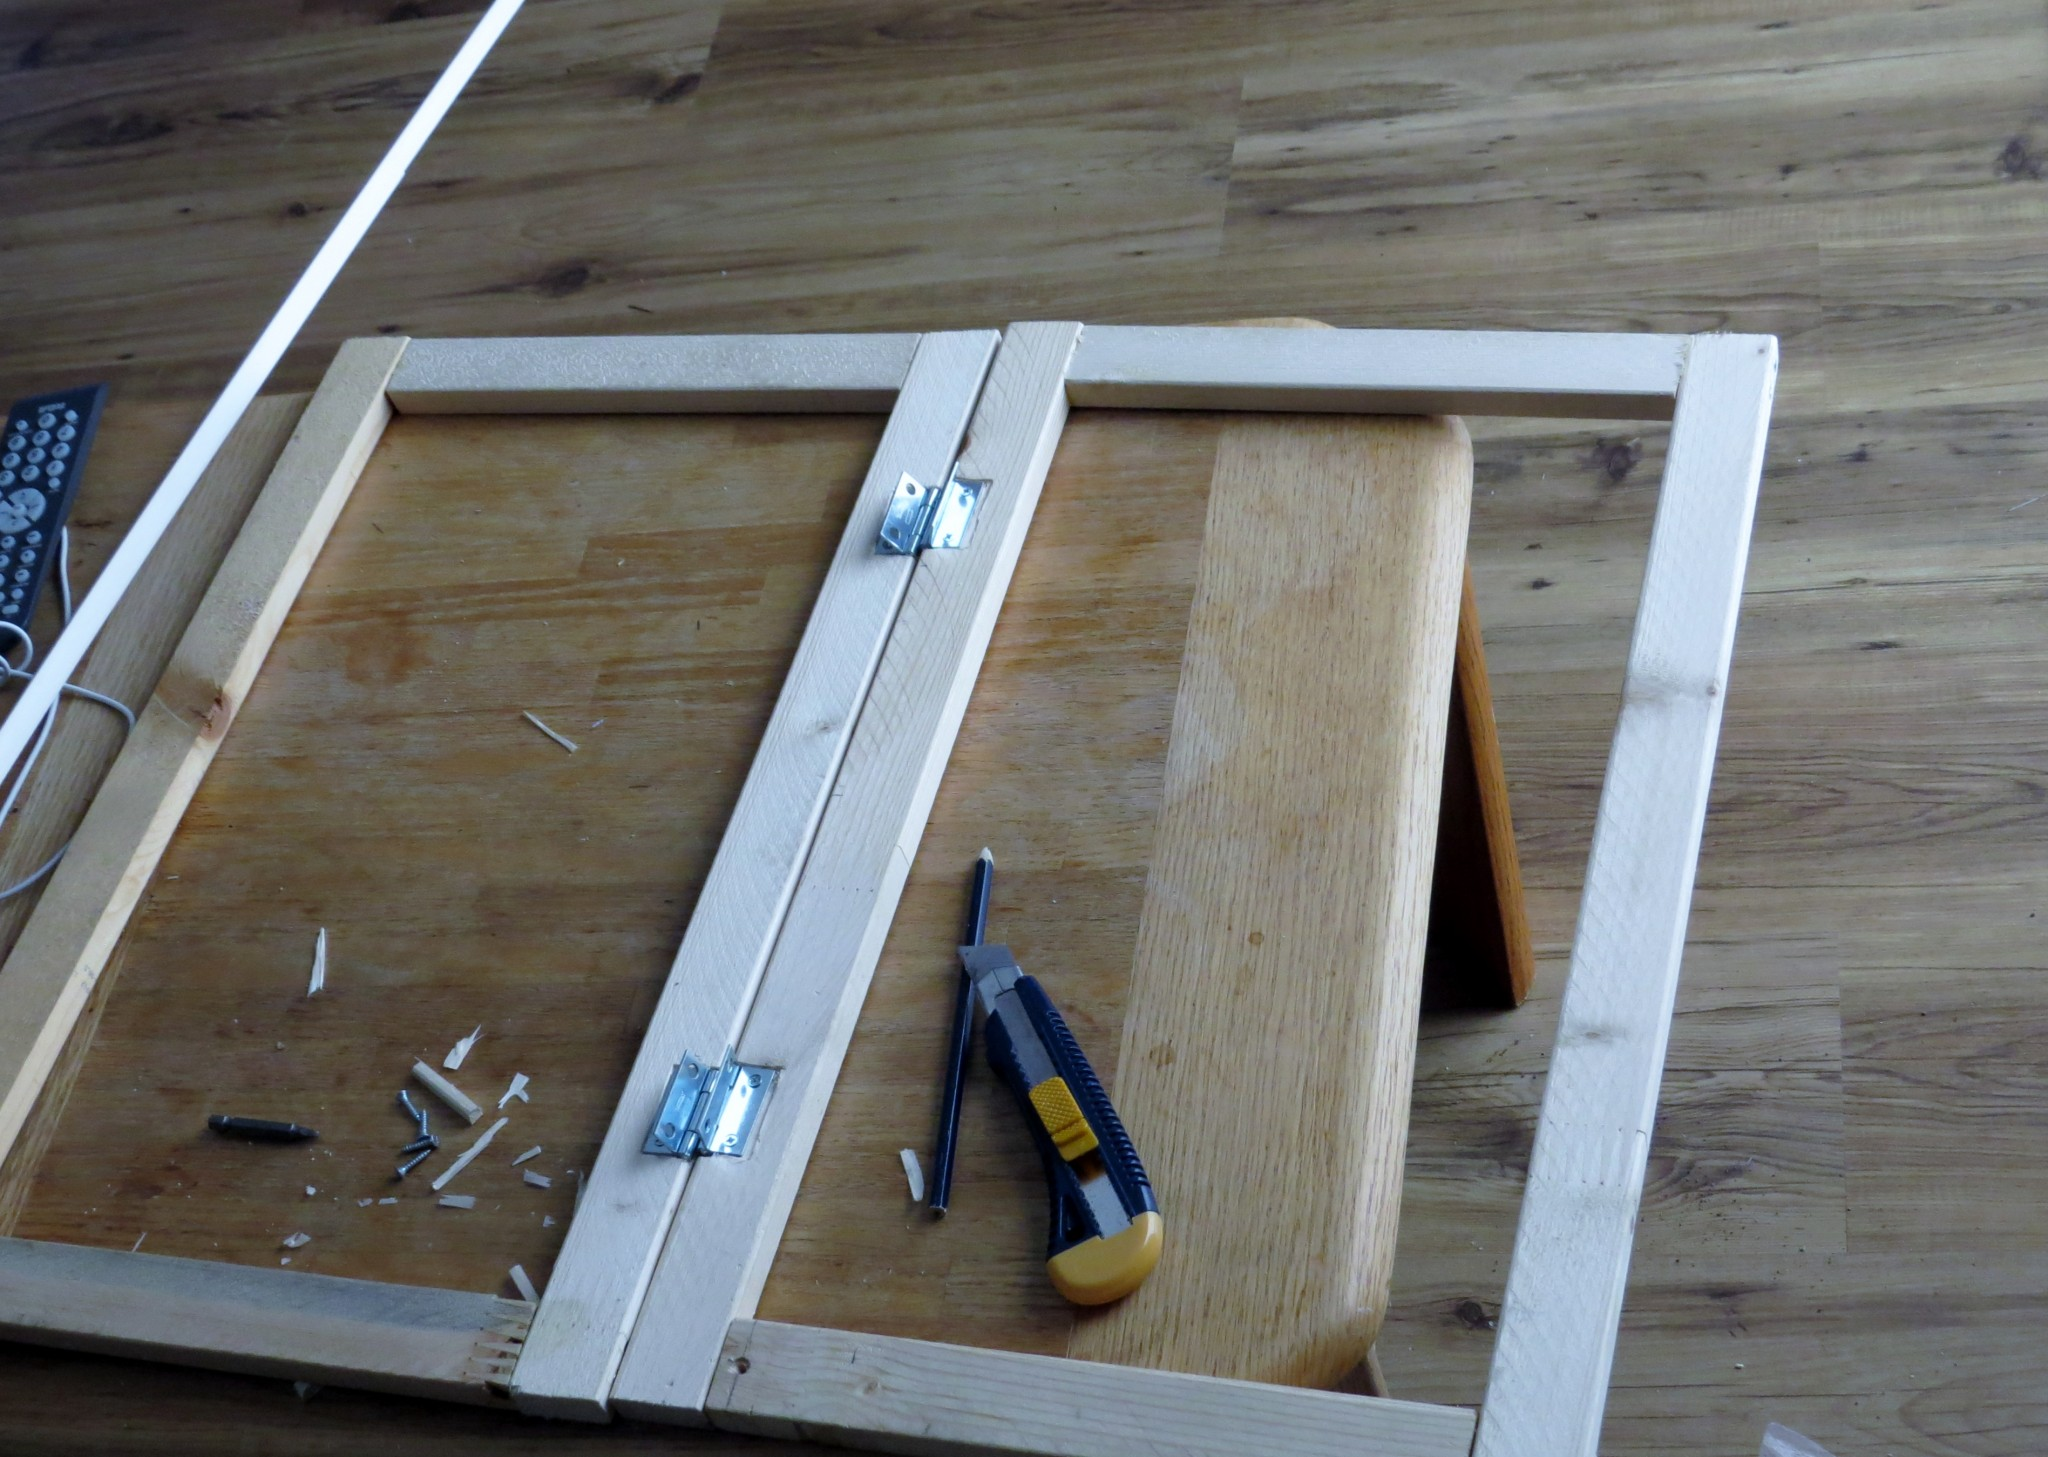 Astro van conversion cabinet door construction